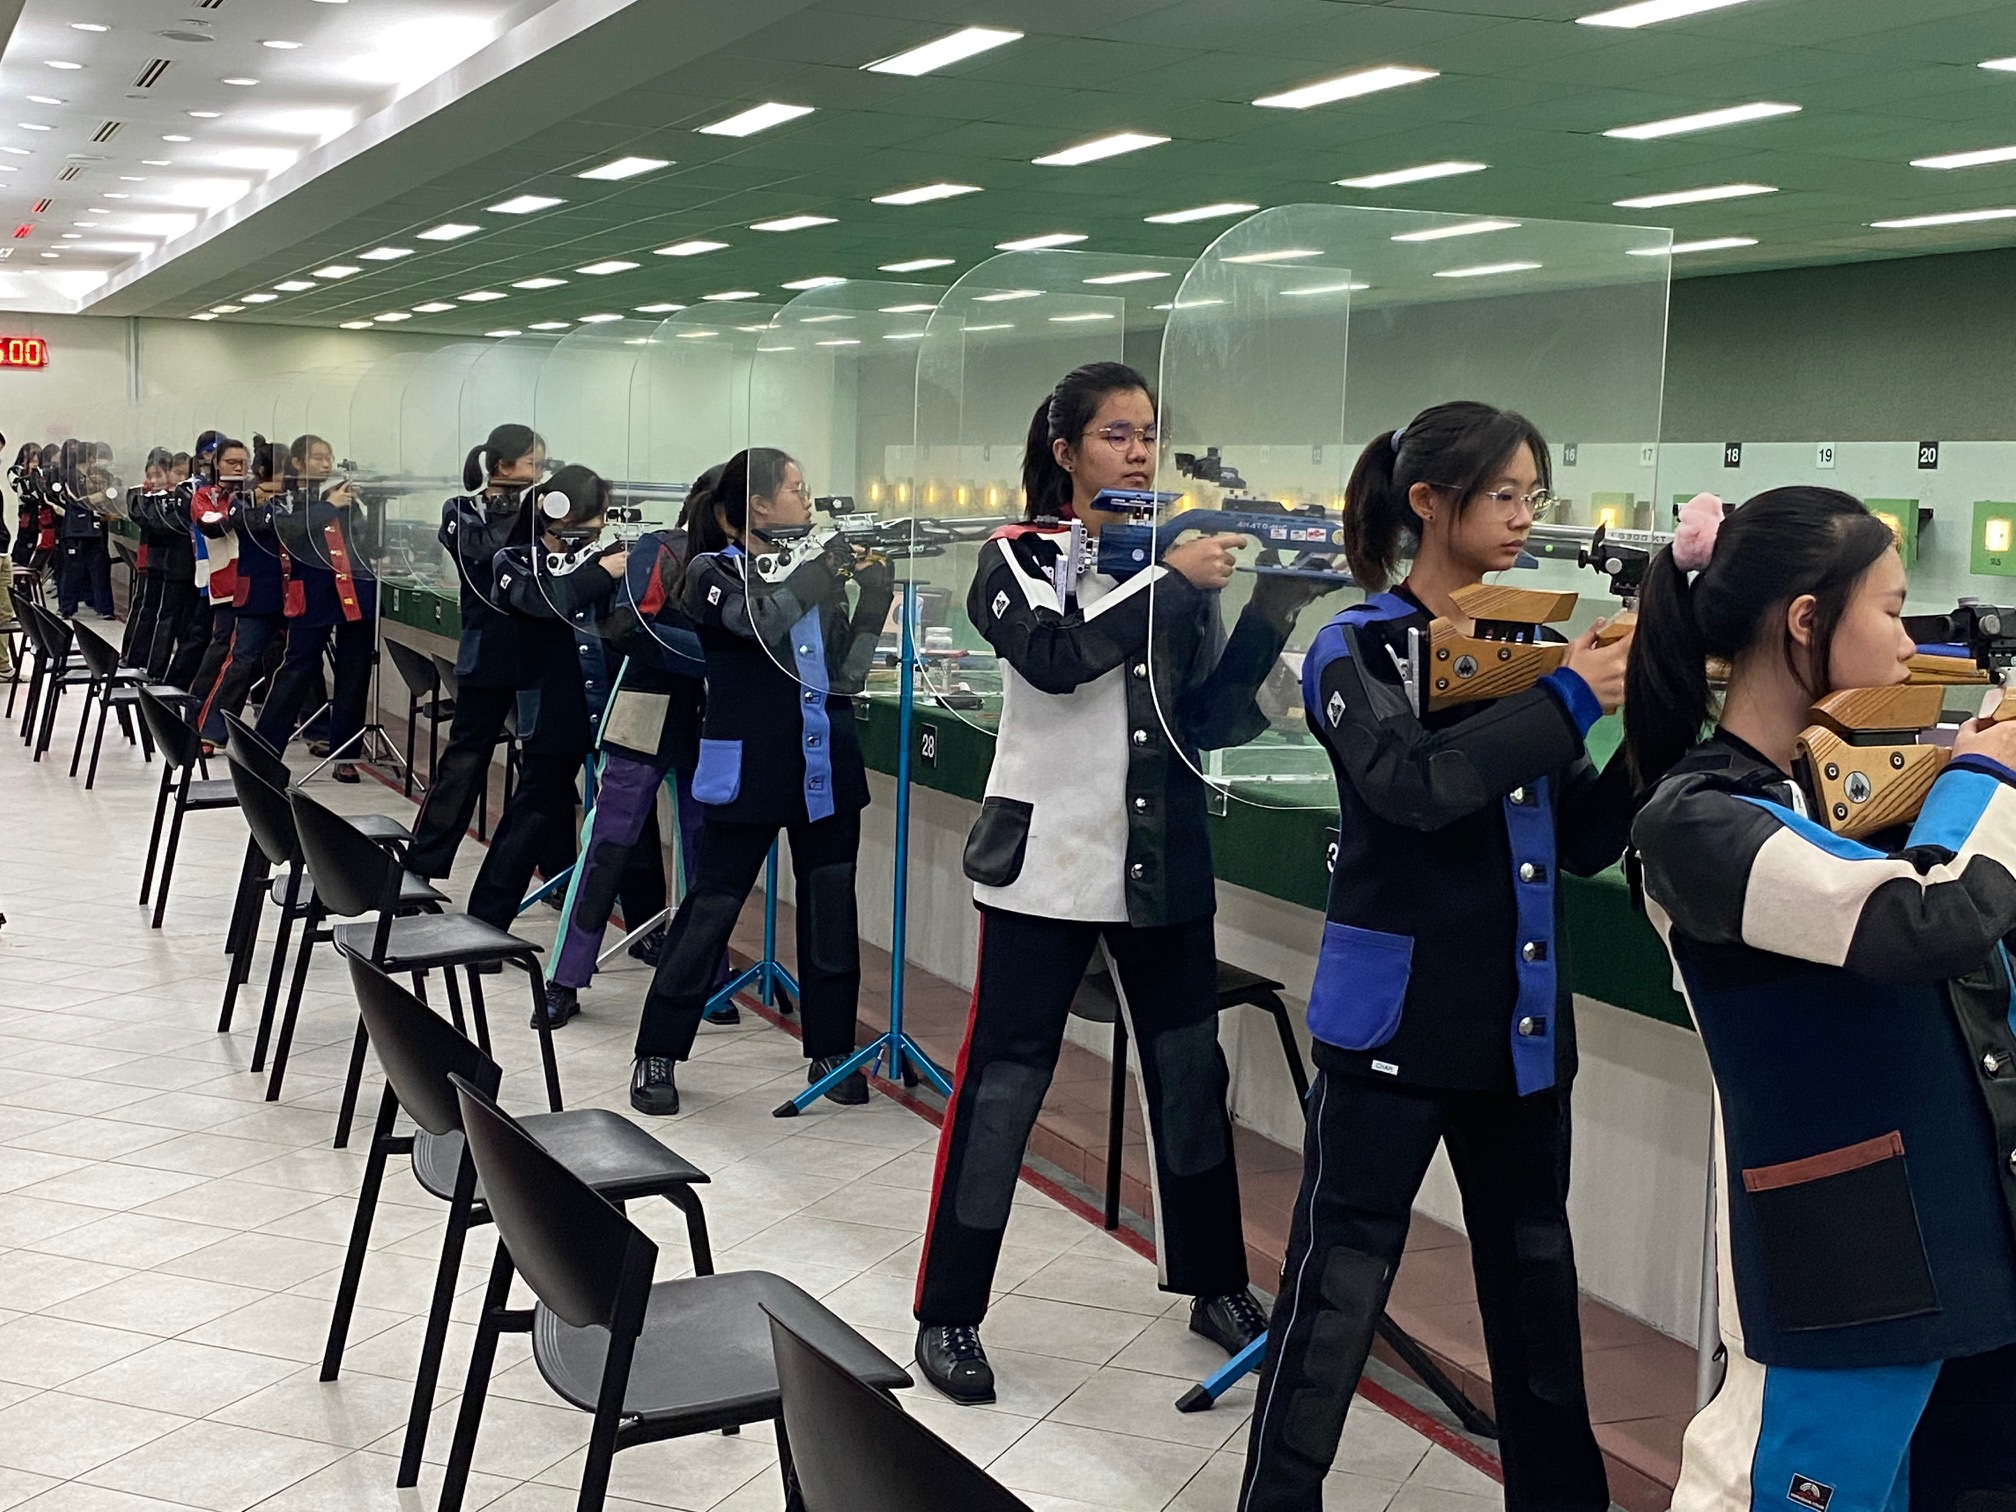 NSG B Div Girls' Shooting C'ship: A stern test of focus as shooters aim for success